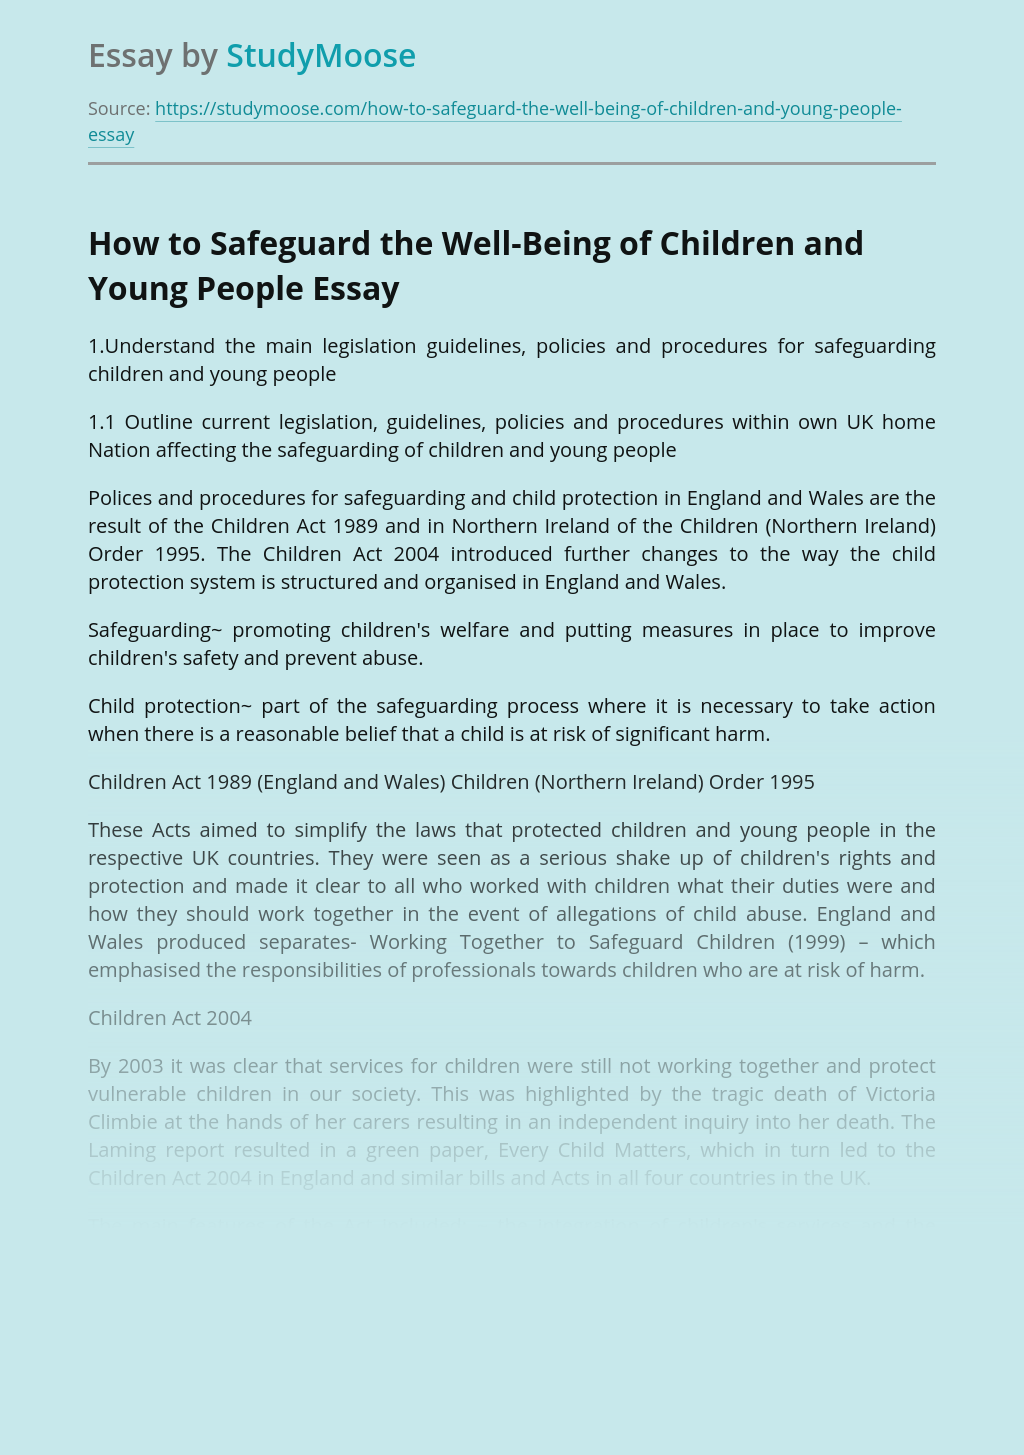 How to Safeguard the Well-Being of Children and Young People